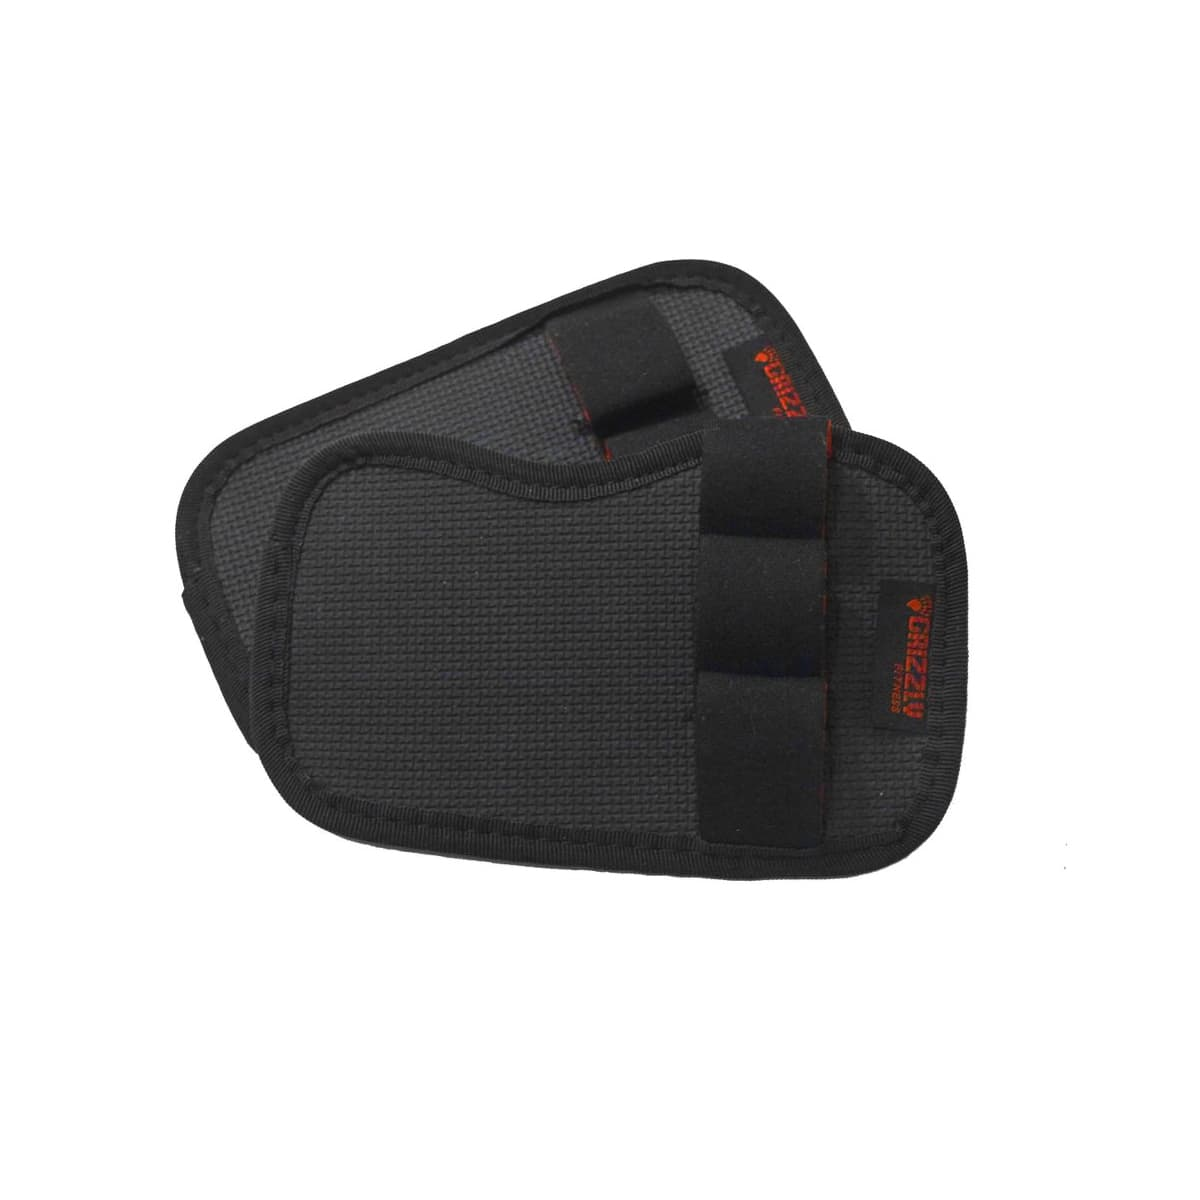 Deluxe Grizzly grab pad